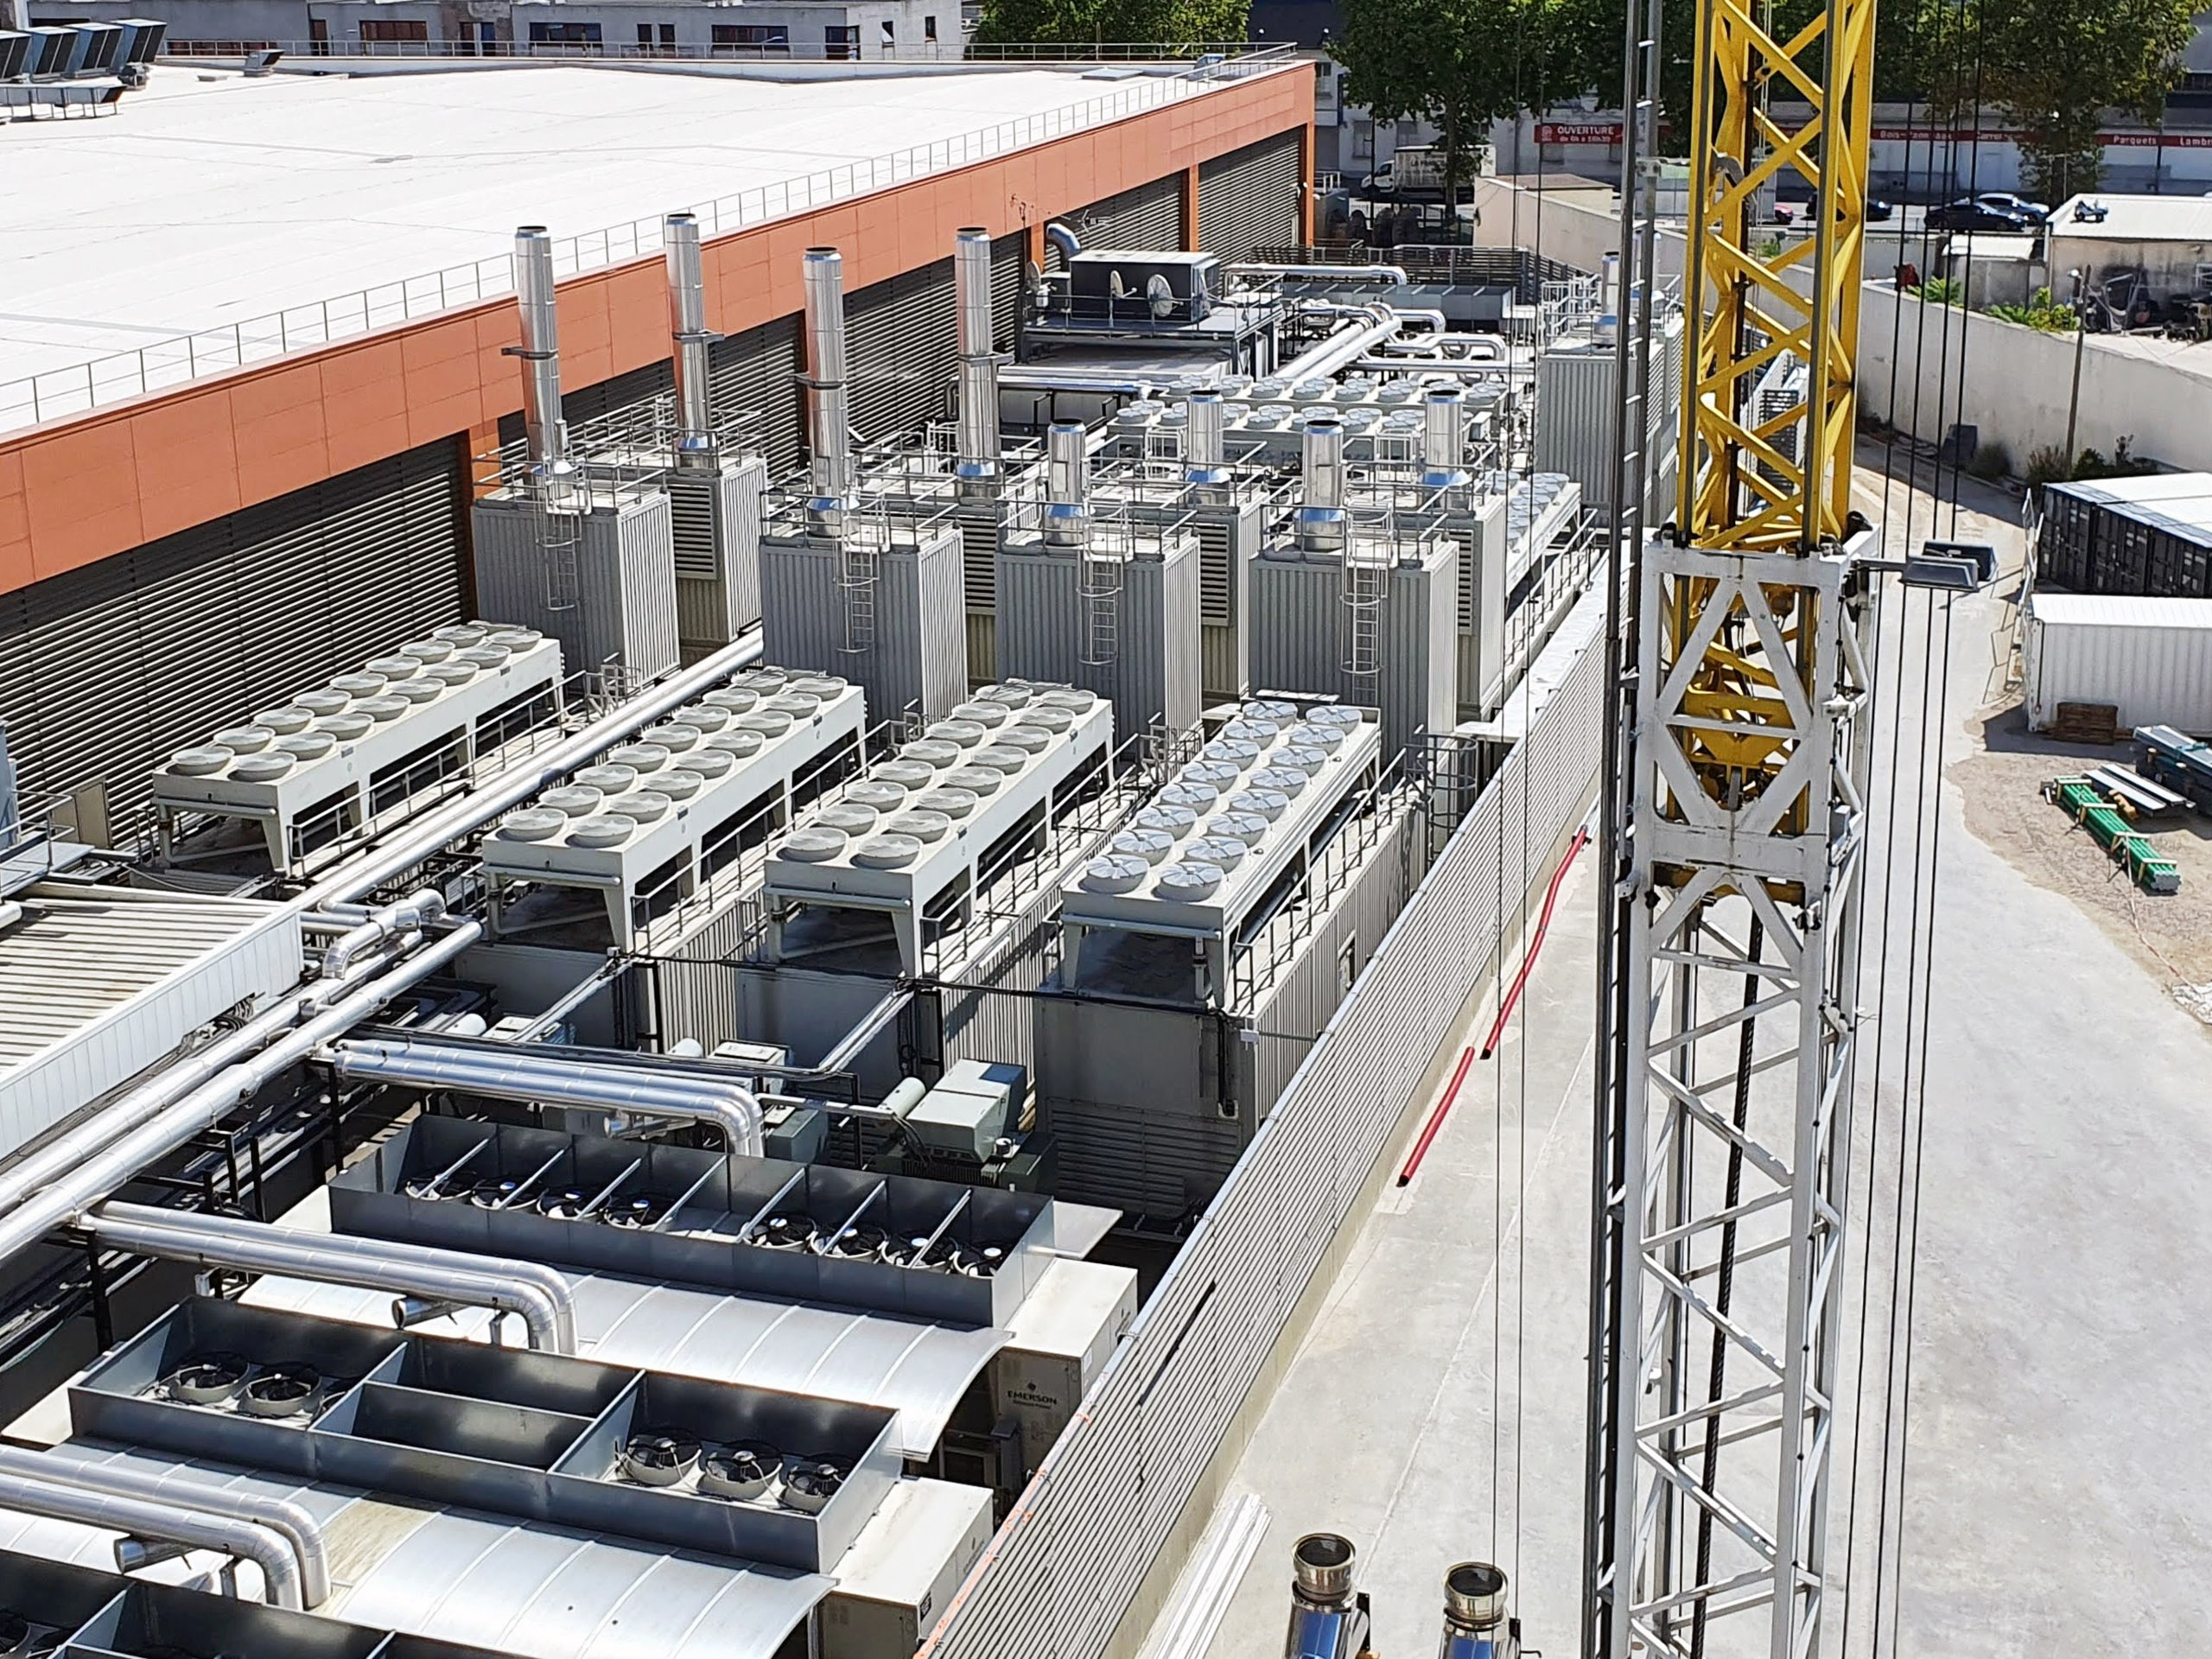 Data centre facilities require a number of backup generators to ensure an uninterrupted power supply